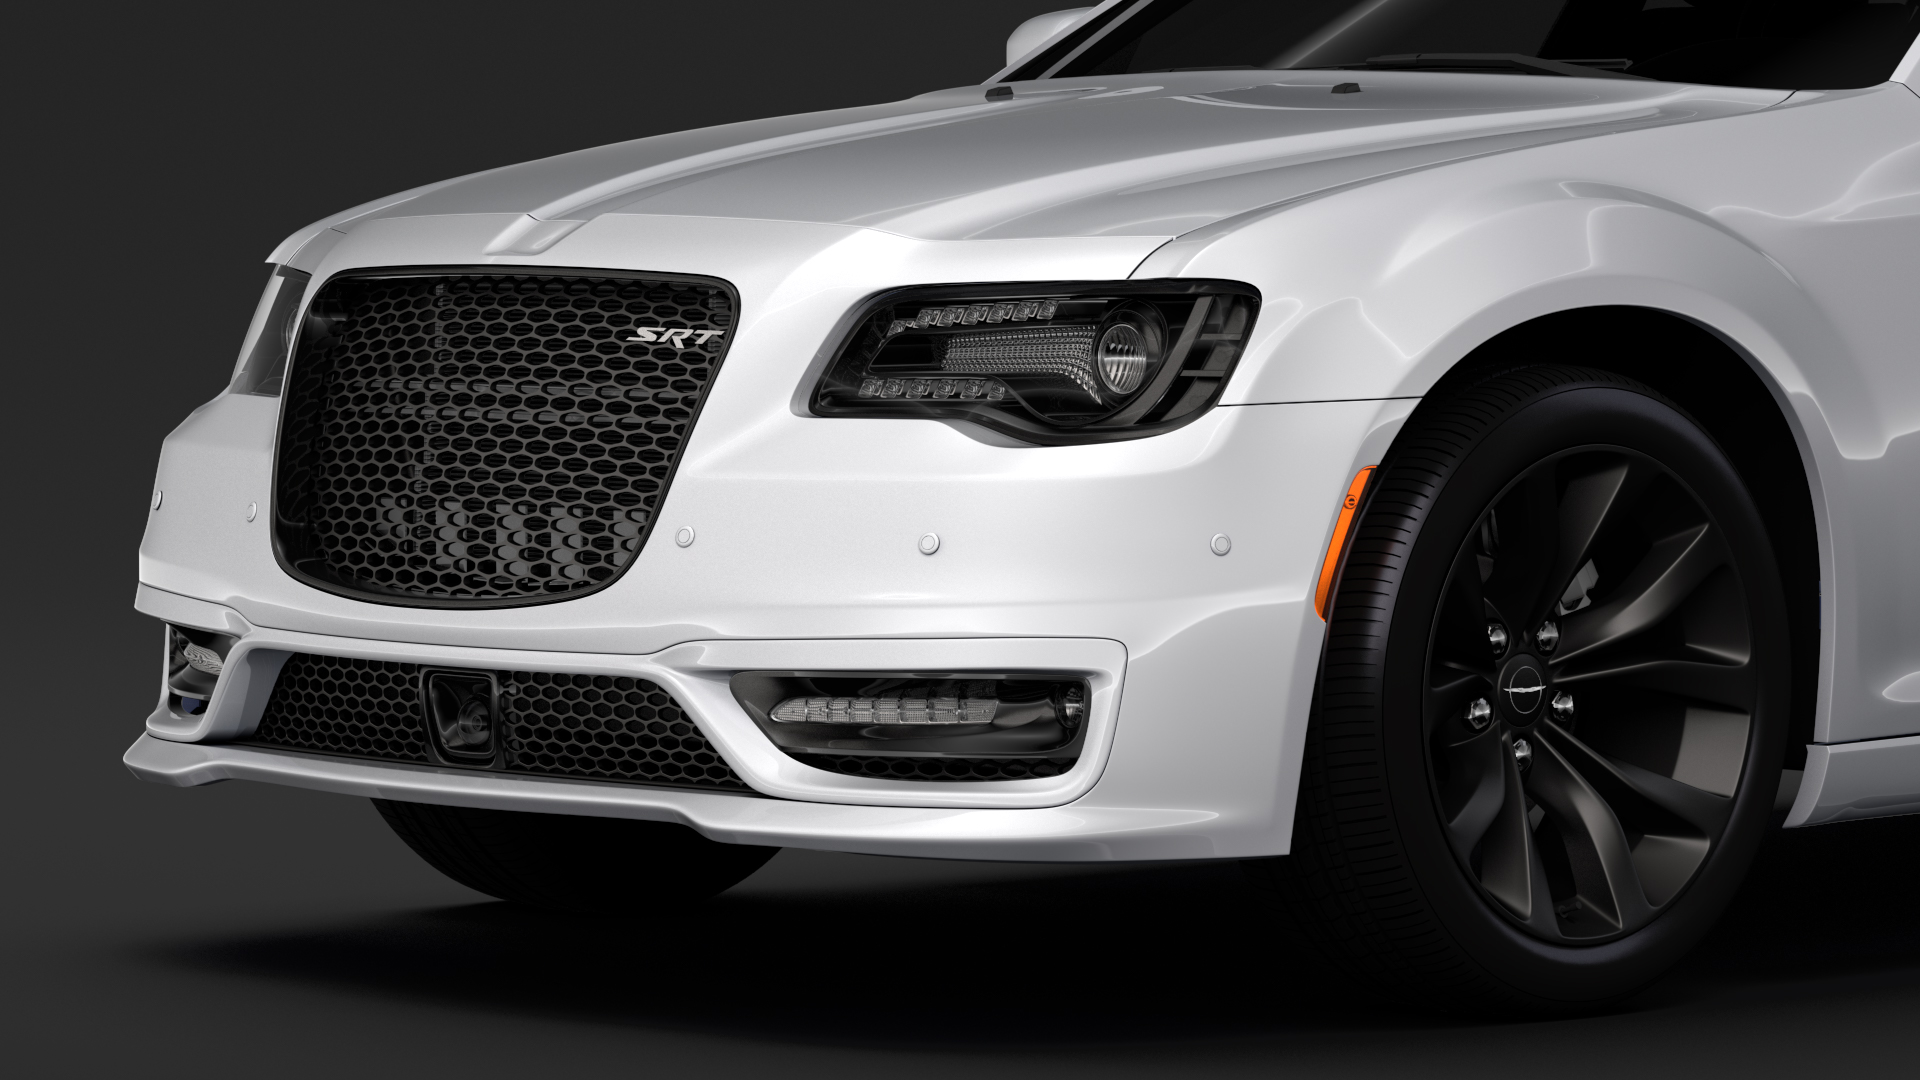 chrysler 300 srt lx2 2018 3d model 3ds max fbx c4d lwo ma mb hrc xsi obj 286095